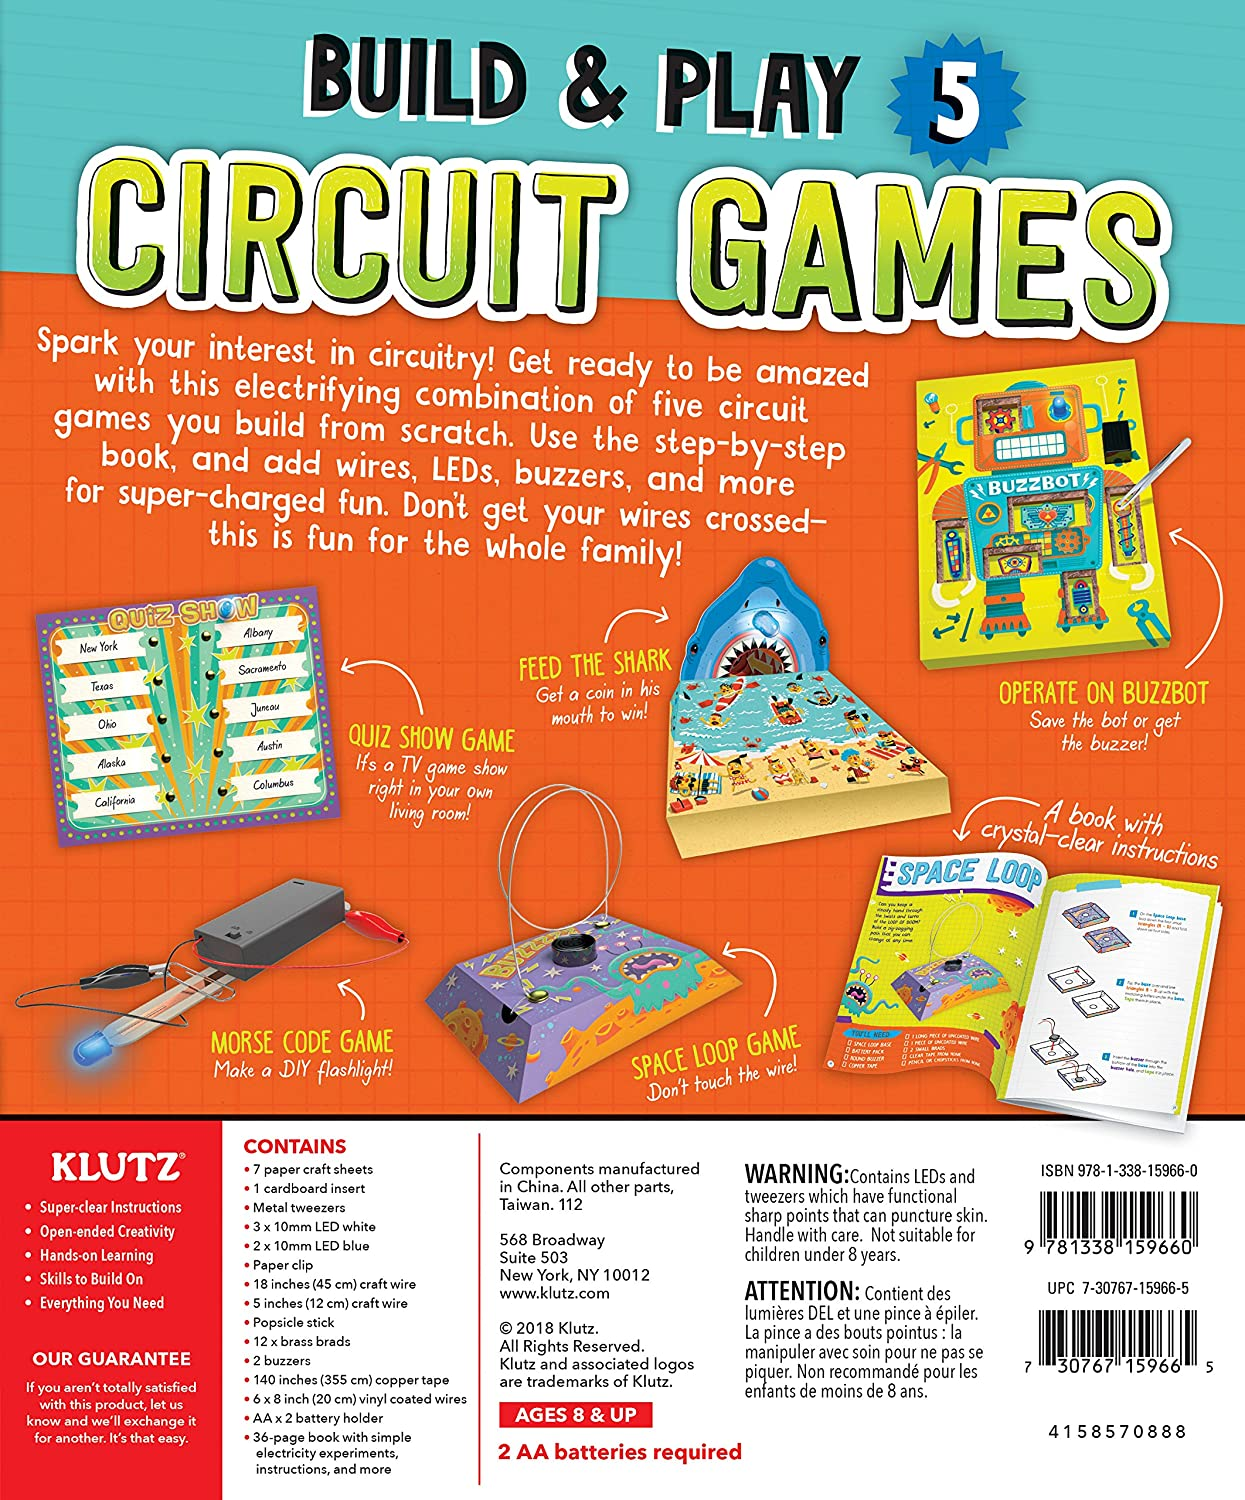 Klutz Maker Lab Circuit Kit Toys Games Fun And Easy To Build Buzzer